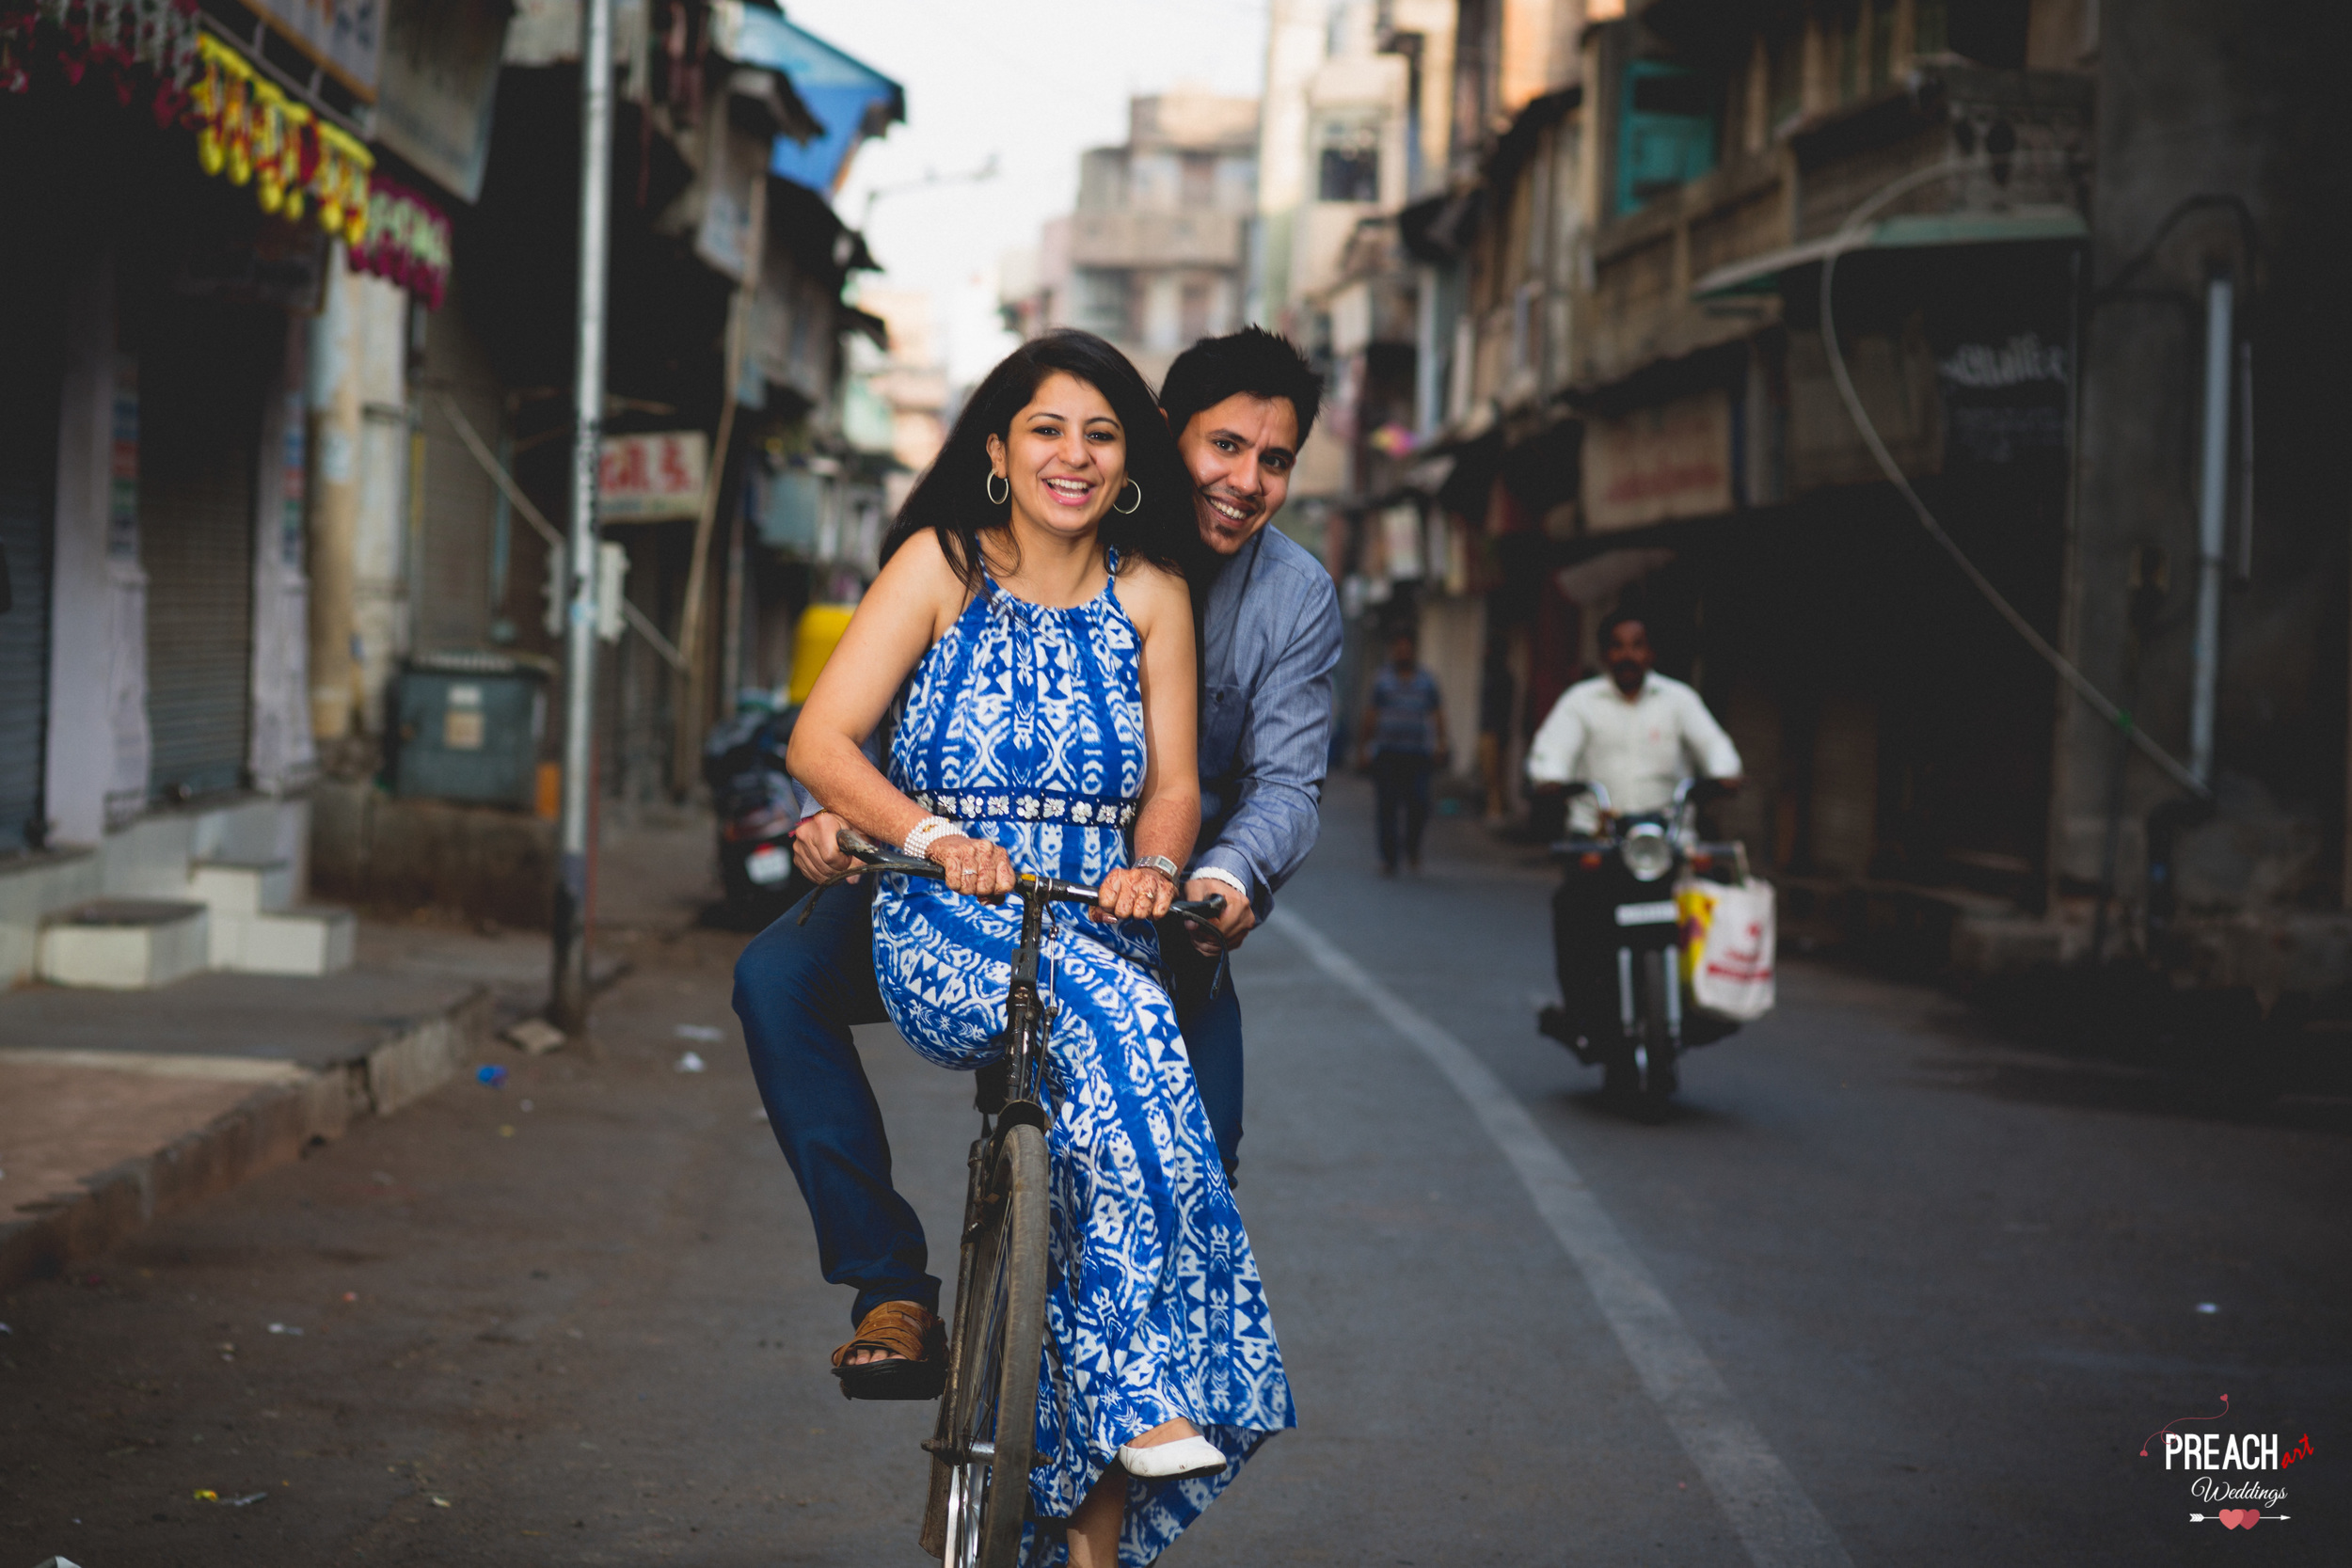 V&M_PRE-WEDDING SHOOT_AHMEDABAD OLD CITY_PREACH ART-11.jpg